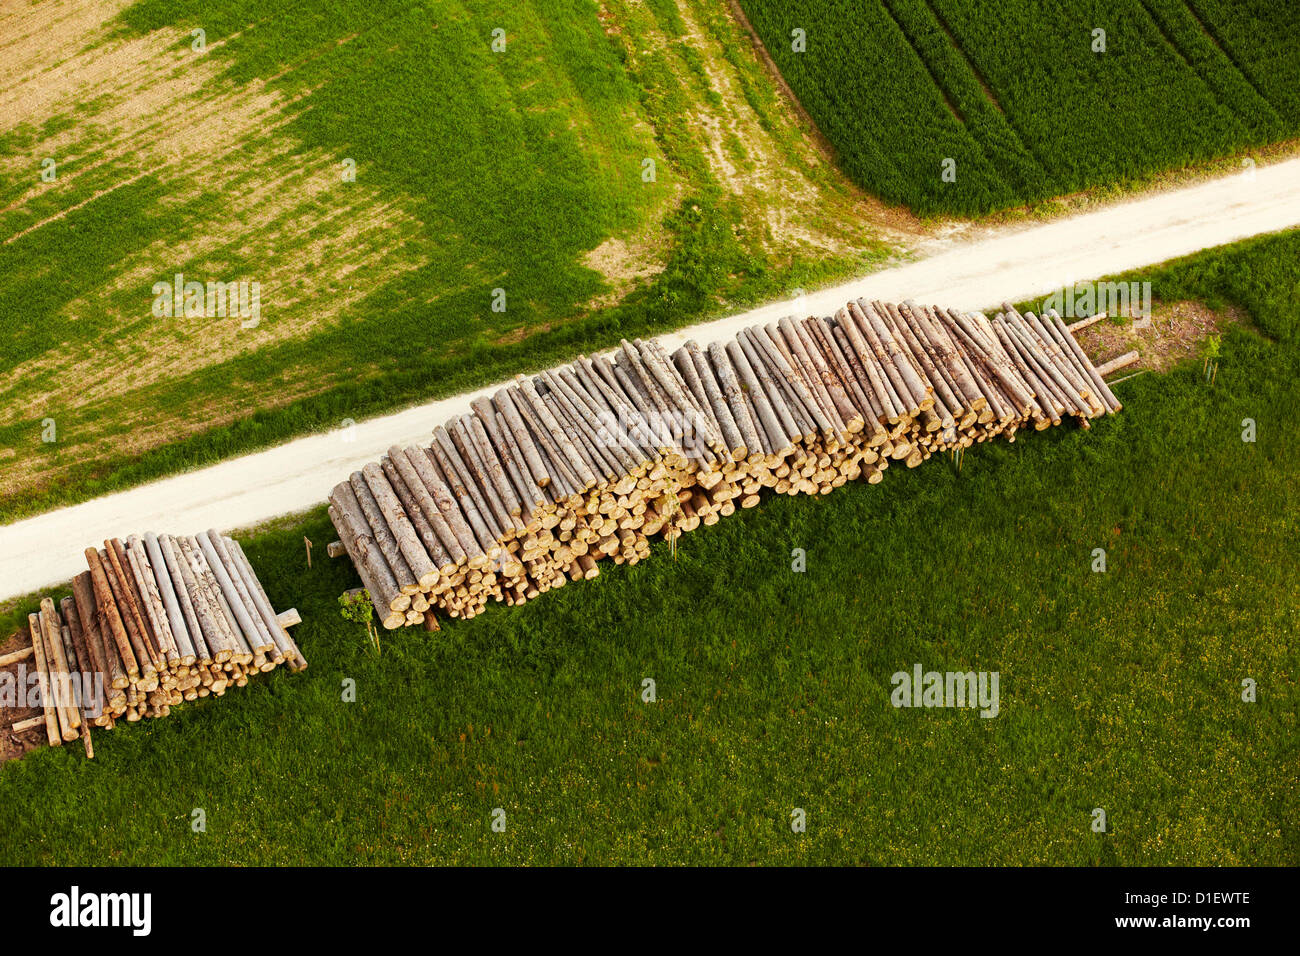 Stored logs at a path, aerial photo - Stock Image